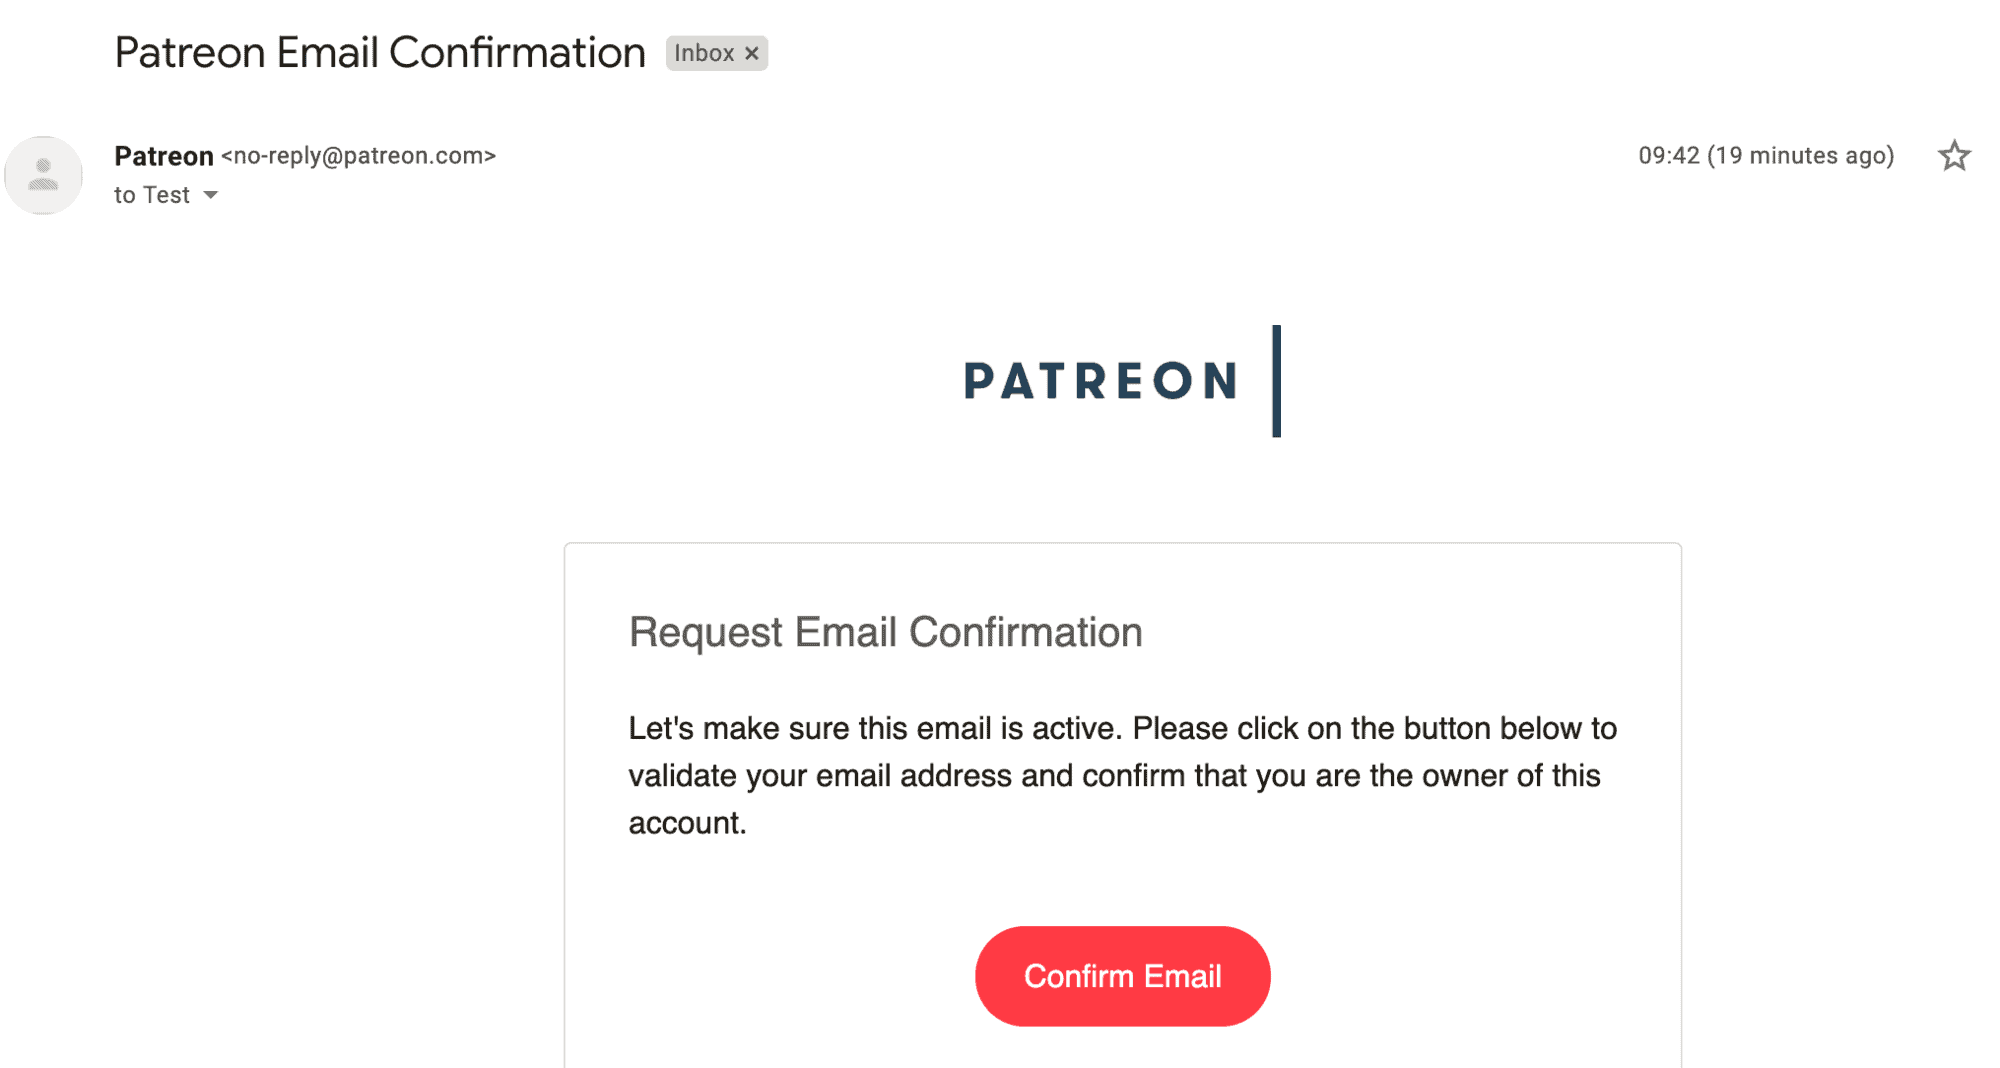 Request email confirmation from Patreon